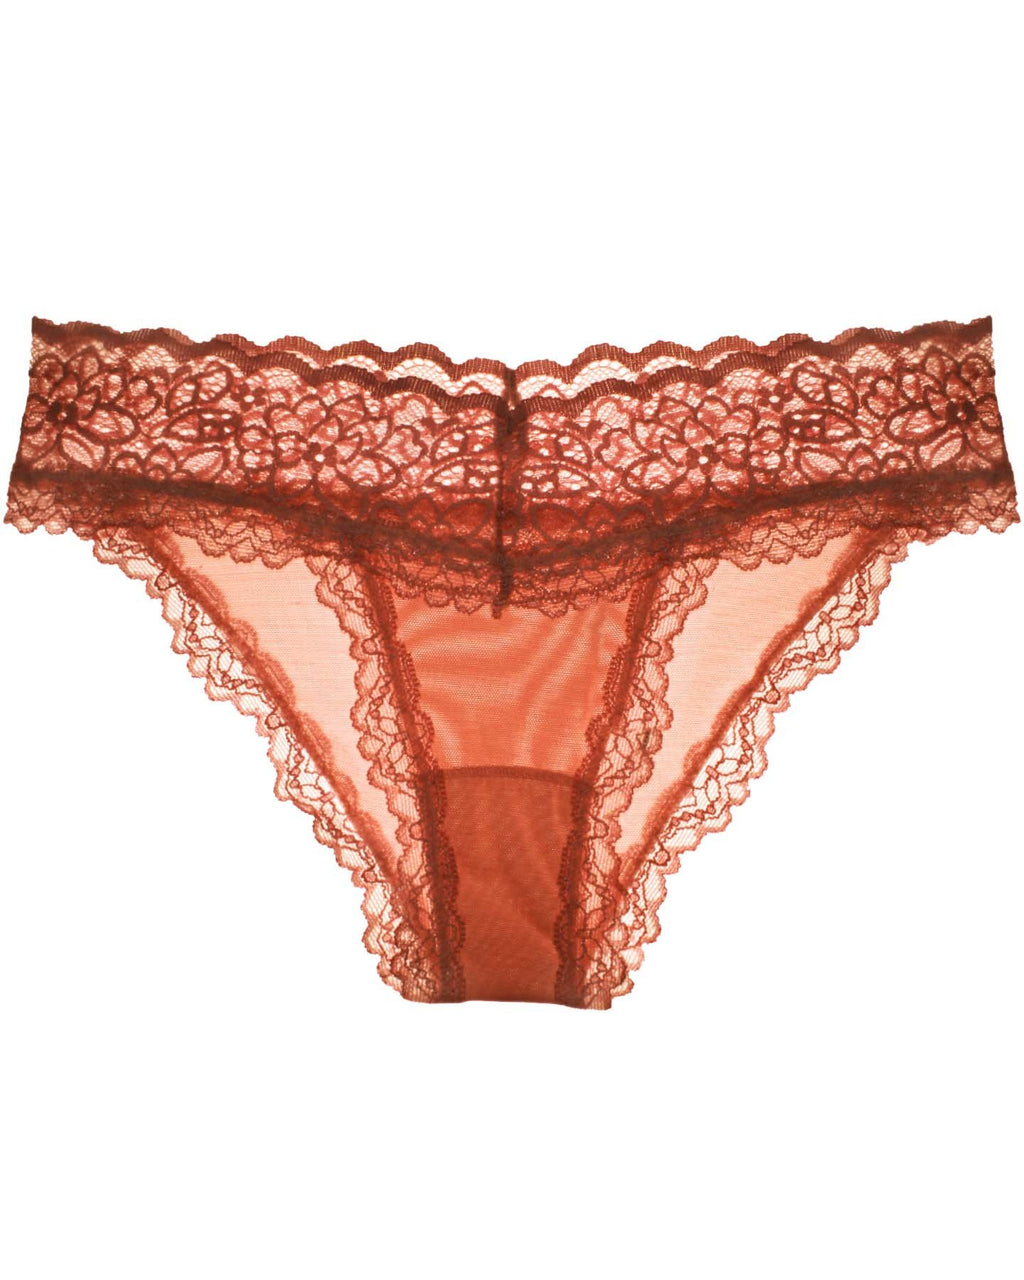 Lacey Panty - Red Clay - XS-3XL